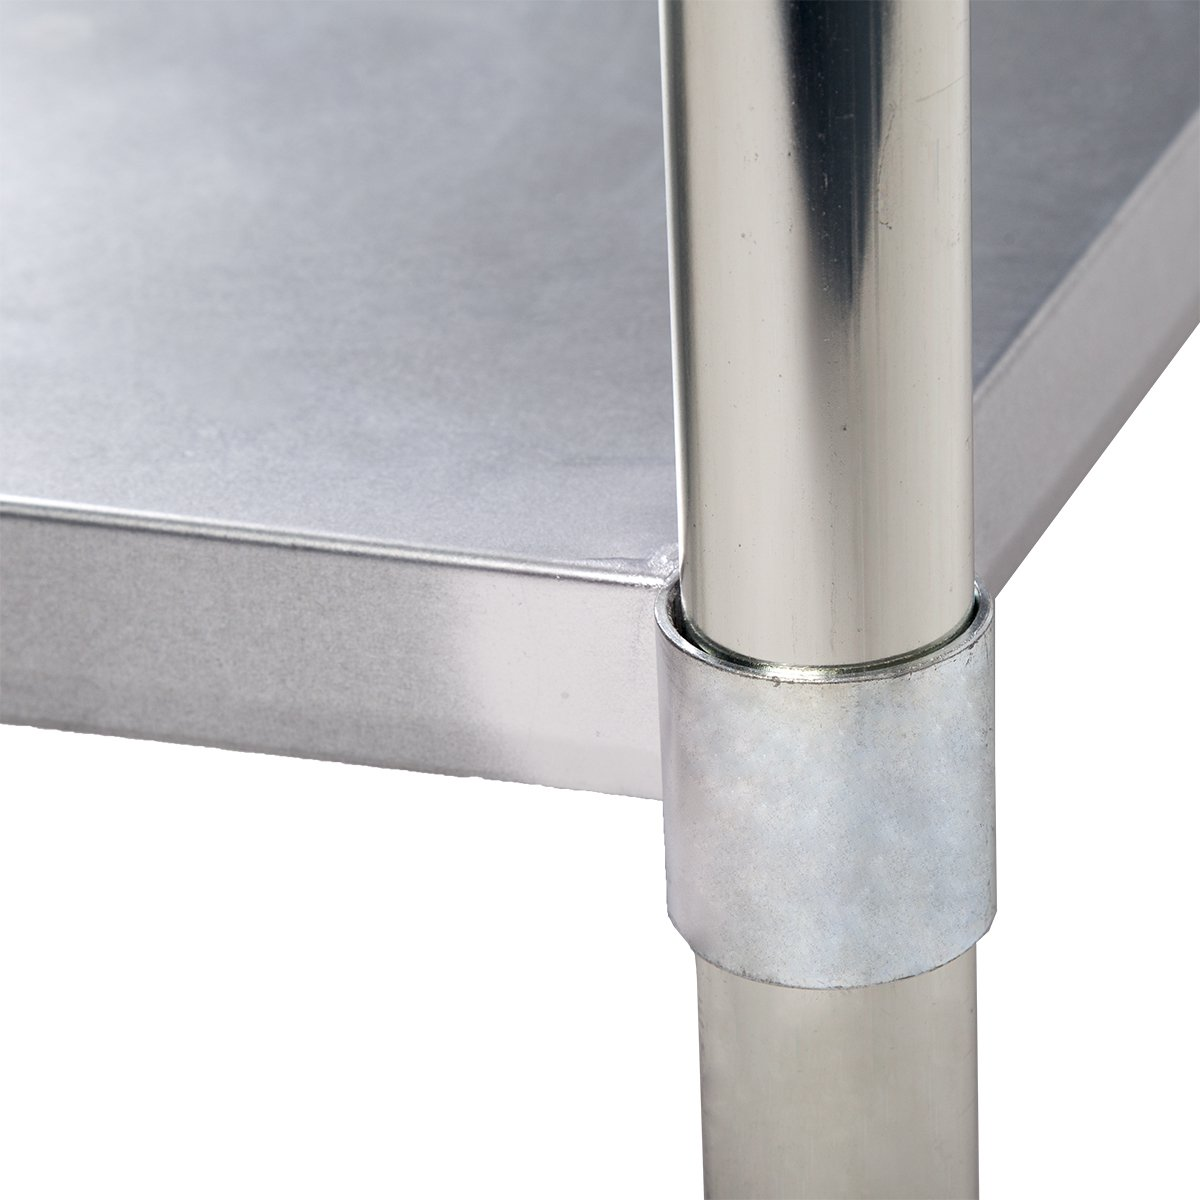 24''x48'' Stainless Steel Work Table with Backsplash Kitchen Restaurant Table EB by BestMassage (Image #5)